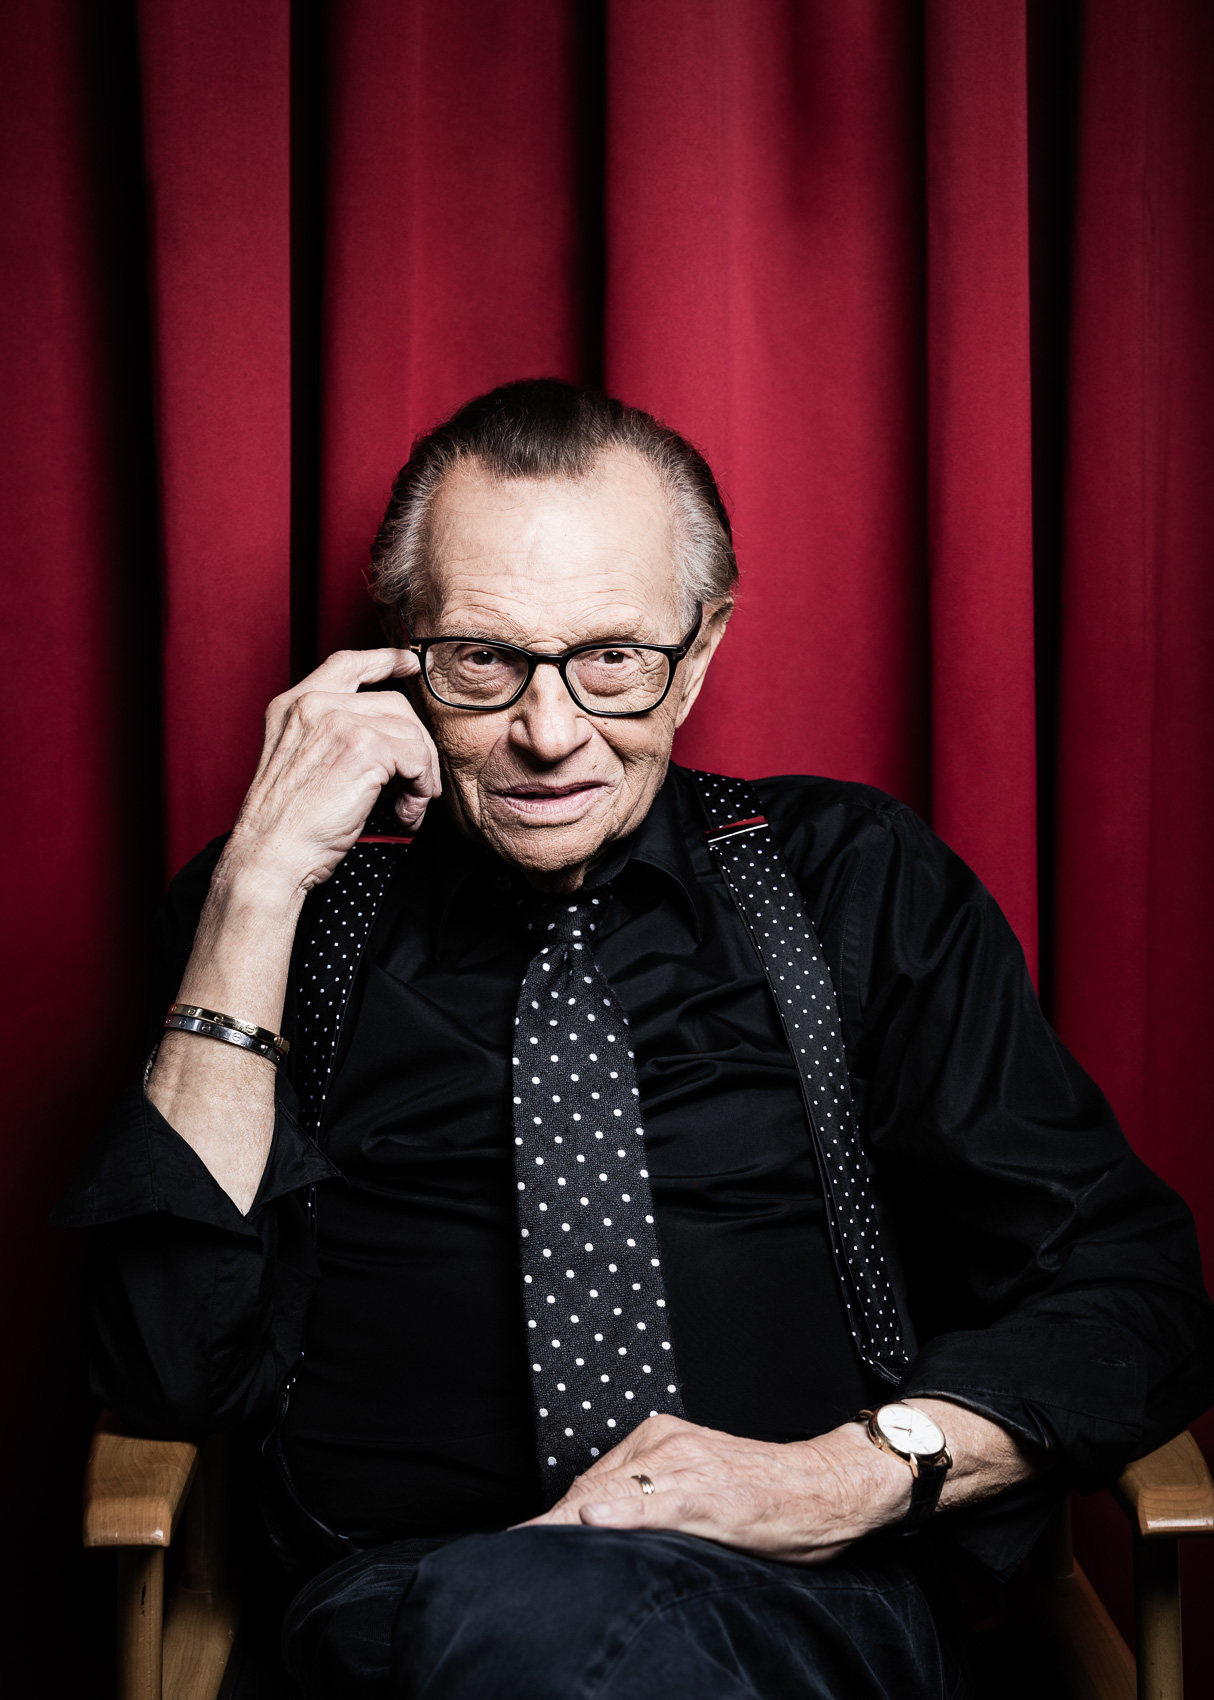 PATRICK STRATTNER PHOTOGRAPHY | Larry King / BILD